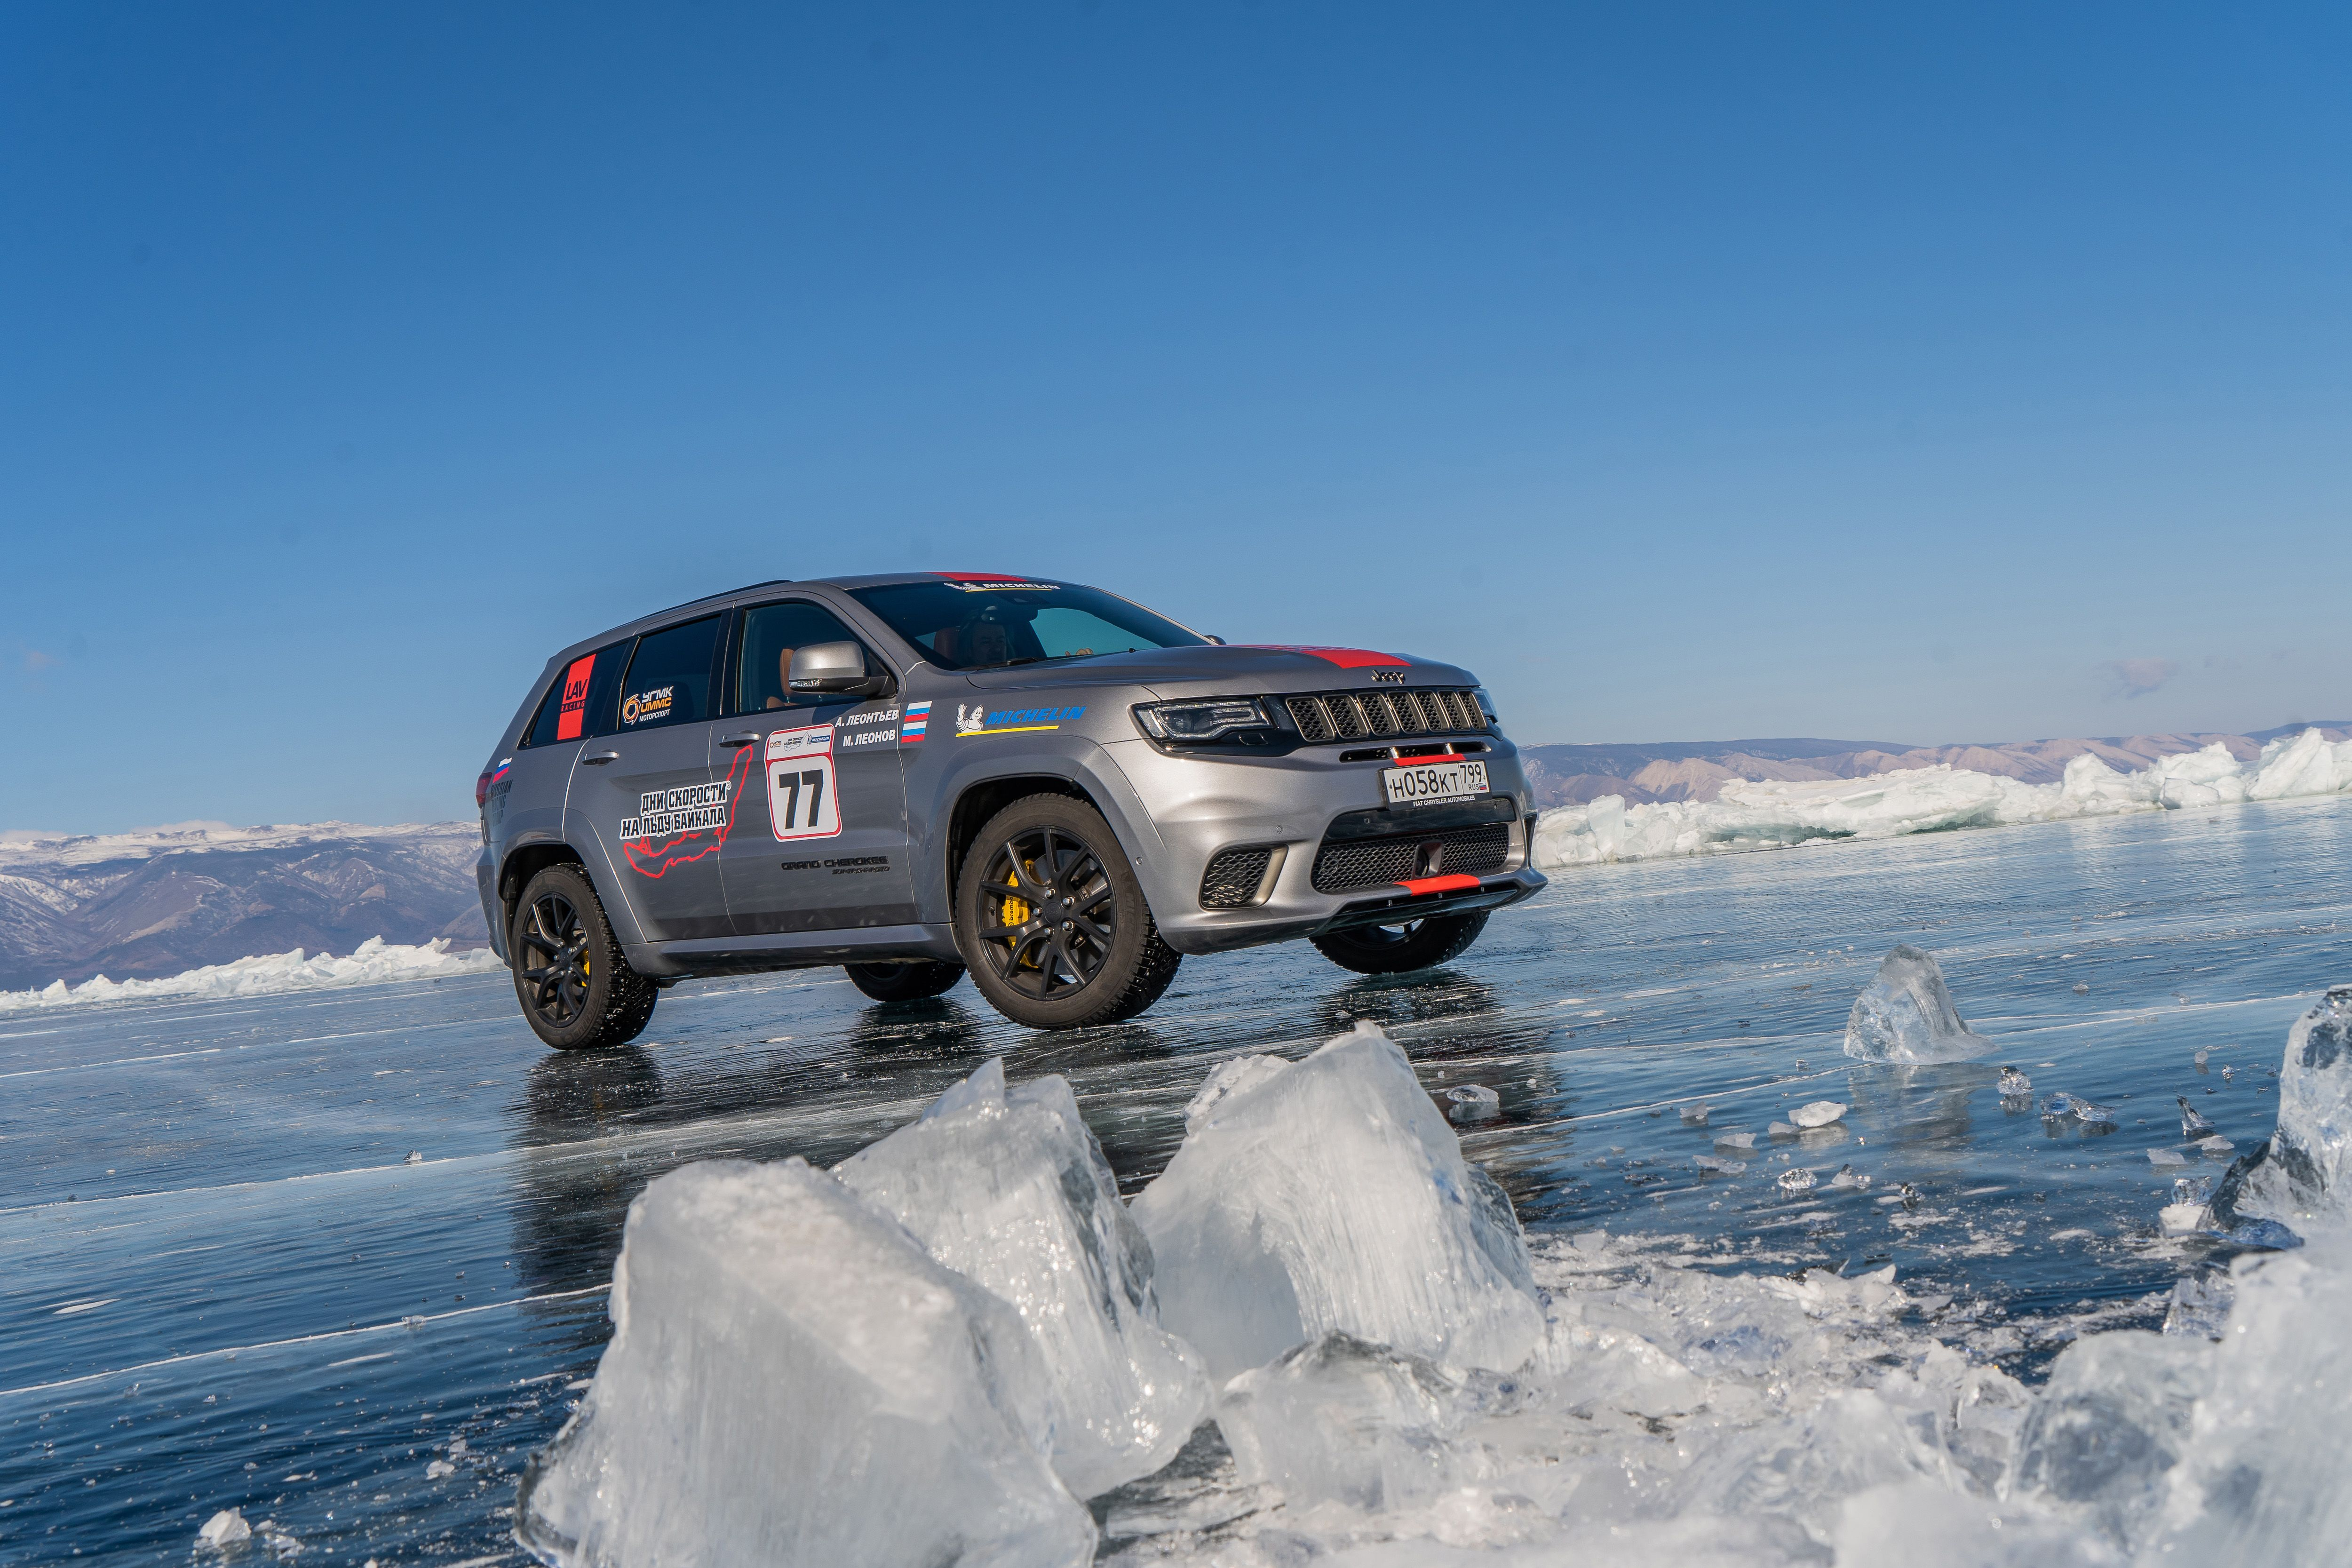 The Jeep Grand Cherokee Trackhawk Is Now the Fastest SUV on Ice